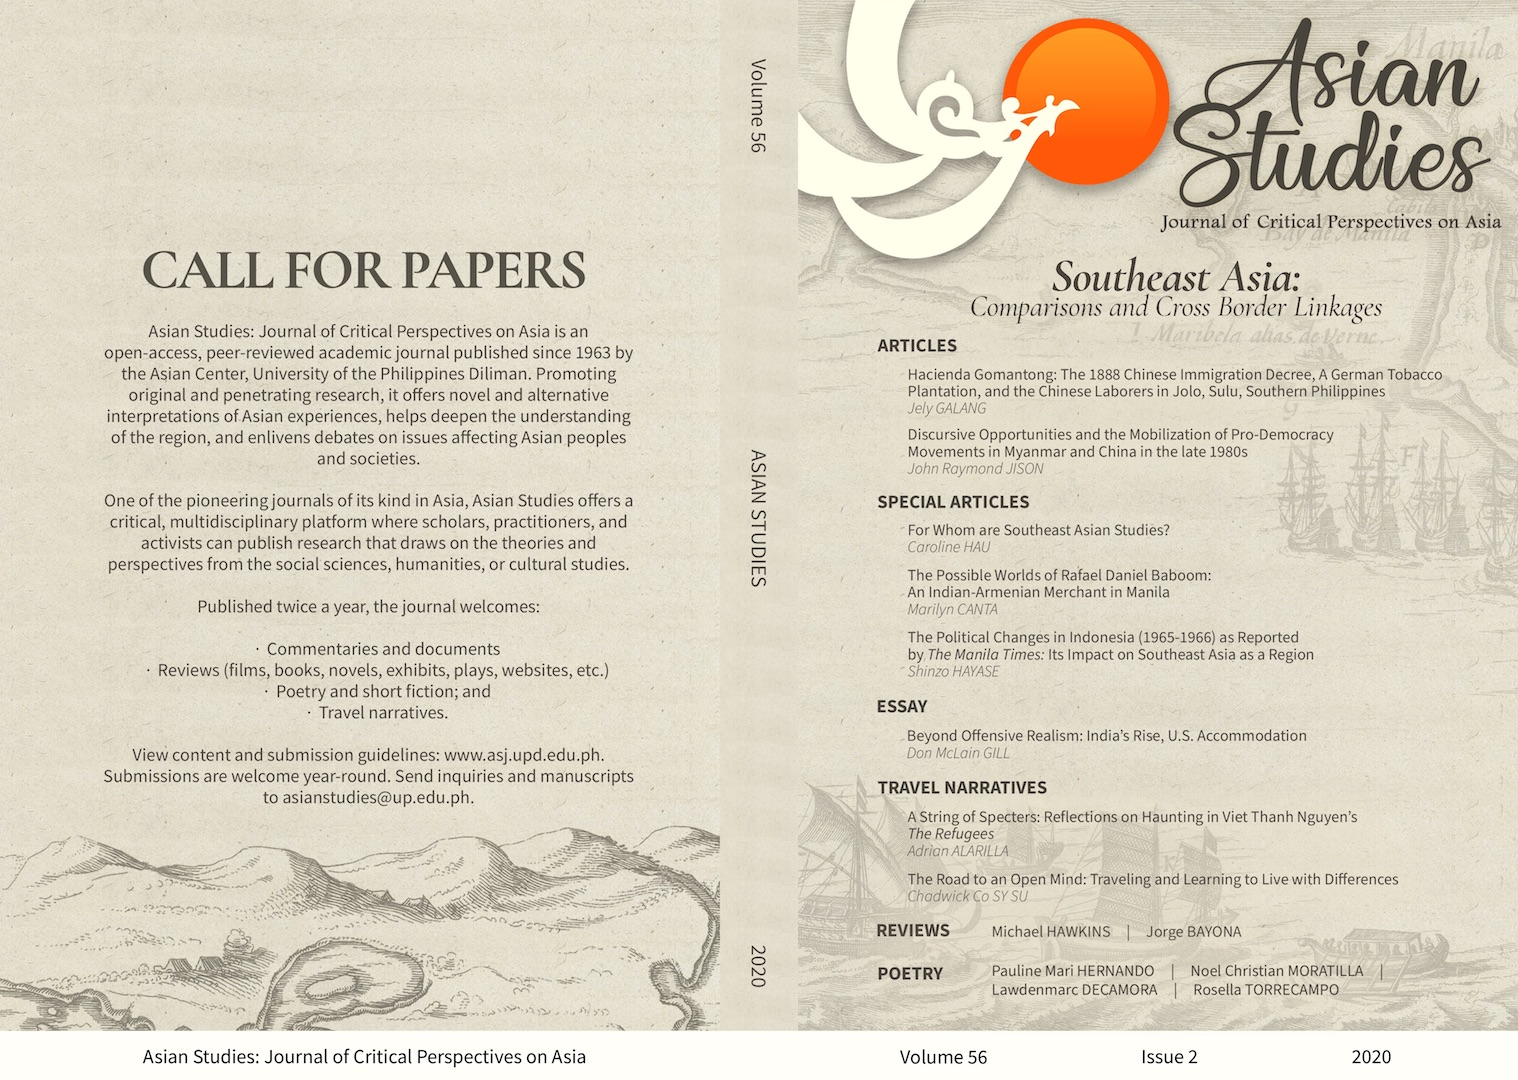 Download FREE: 'Asian Studies' Launches Southeast Asia-Themed Issue